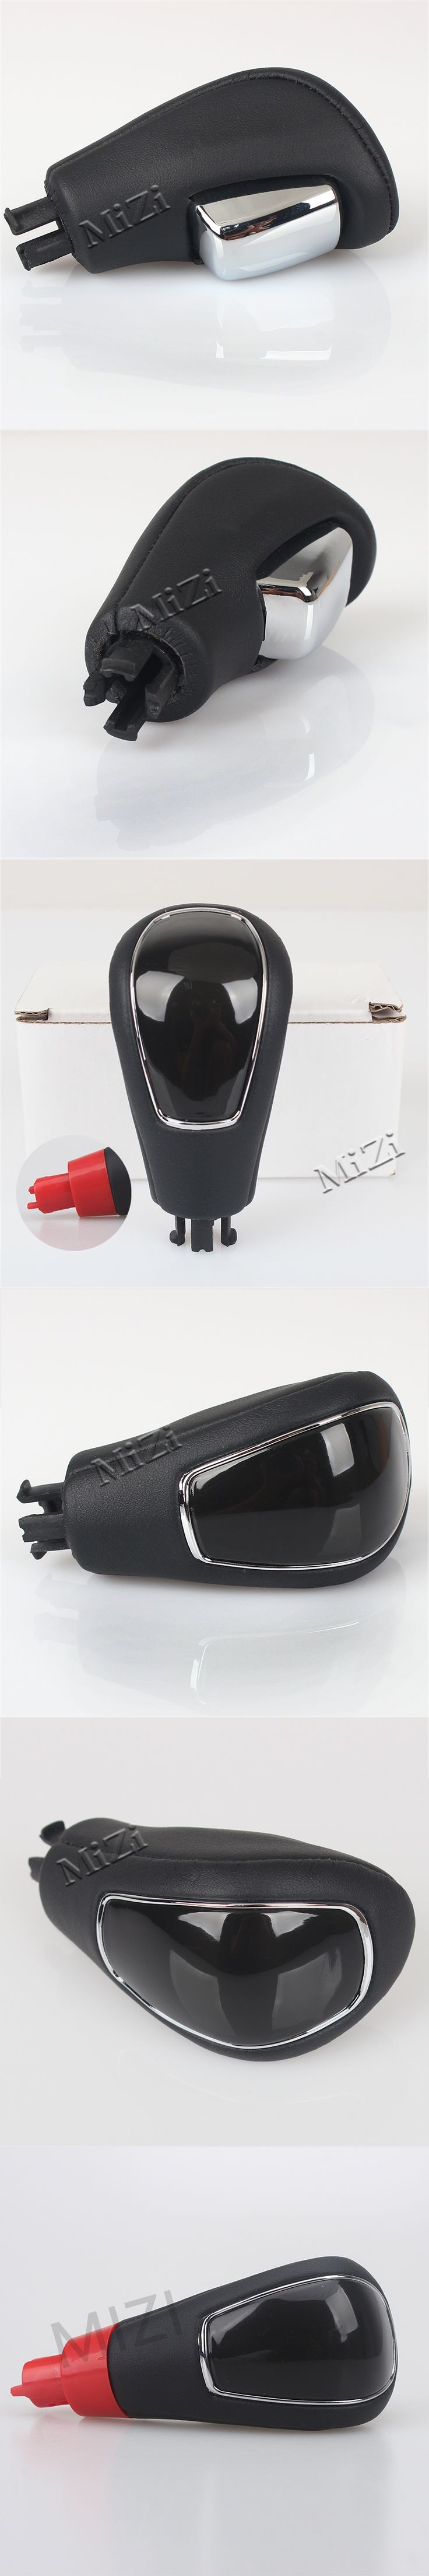 New Black Automatic Transmission Gear Shift Knob For Ford Mondeo Mk4 S-MAX Quality Assured Wholesale